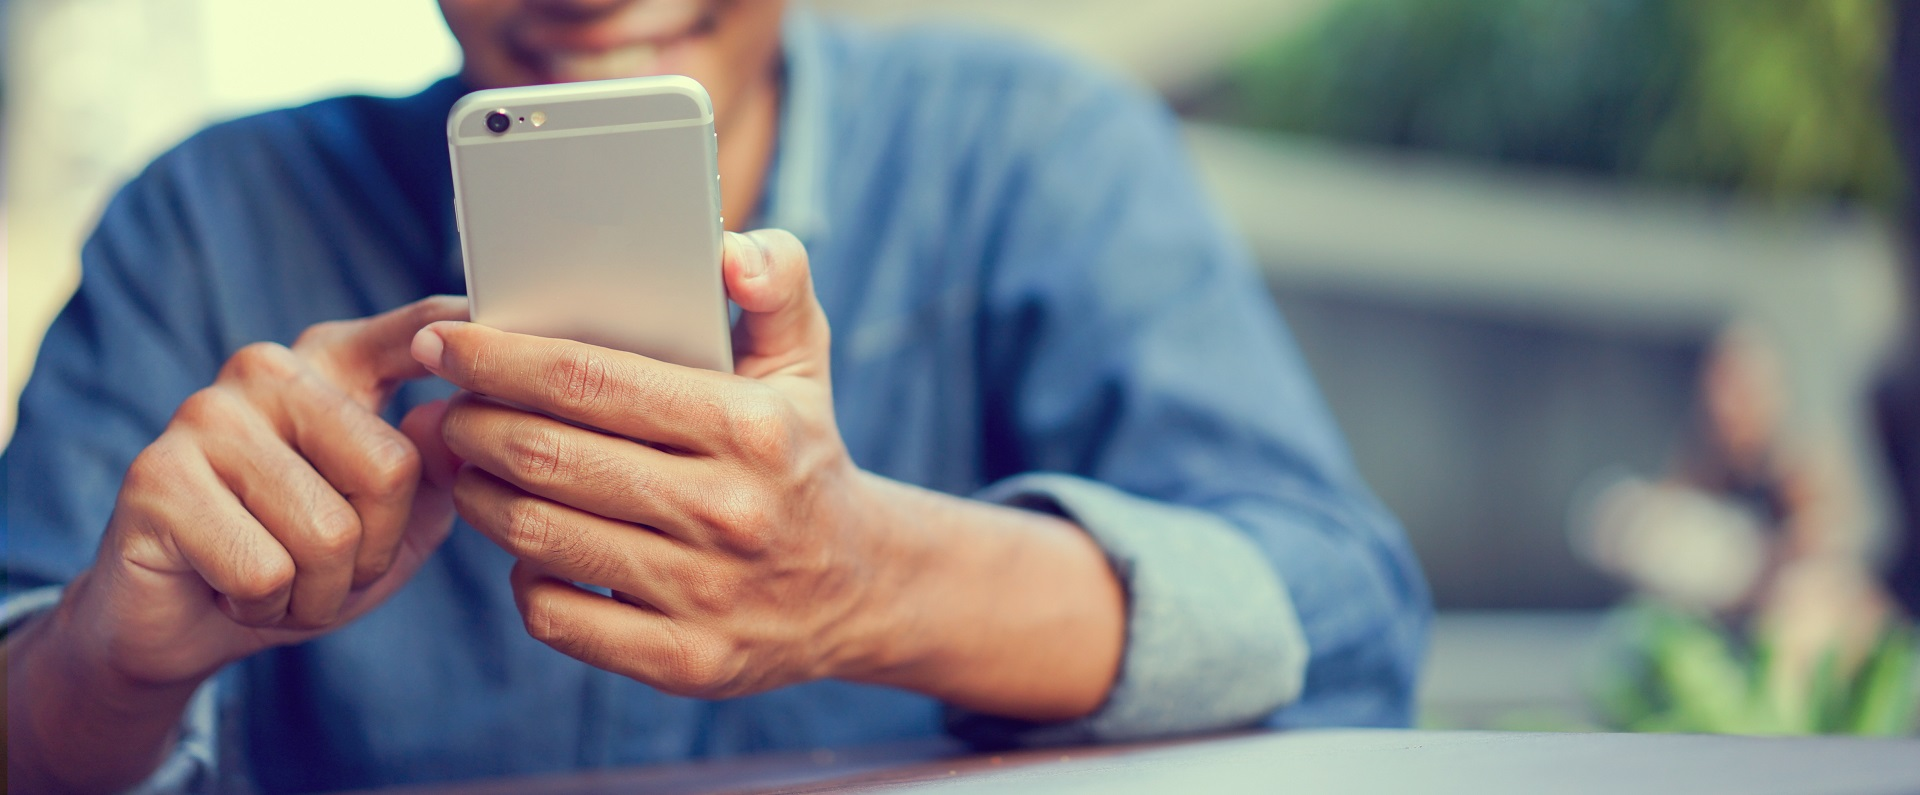 Should You Install a Banking App on Your Phone?